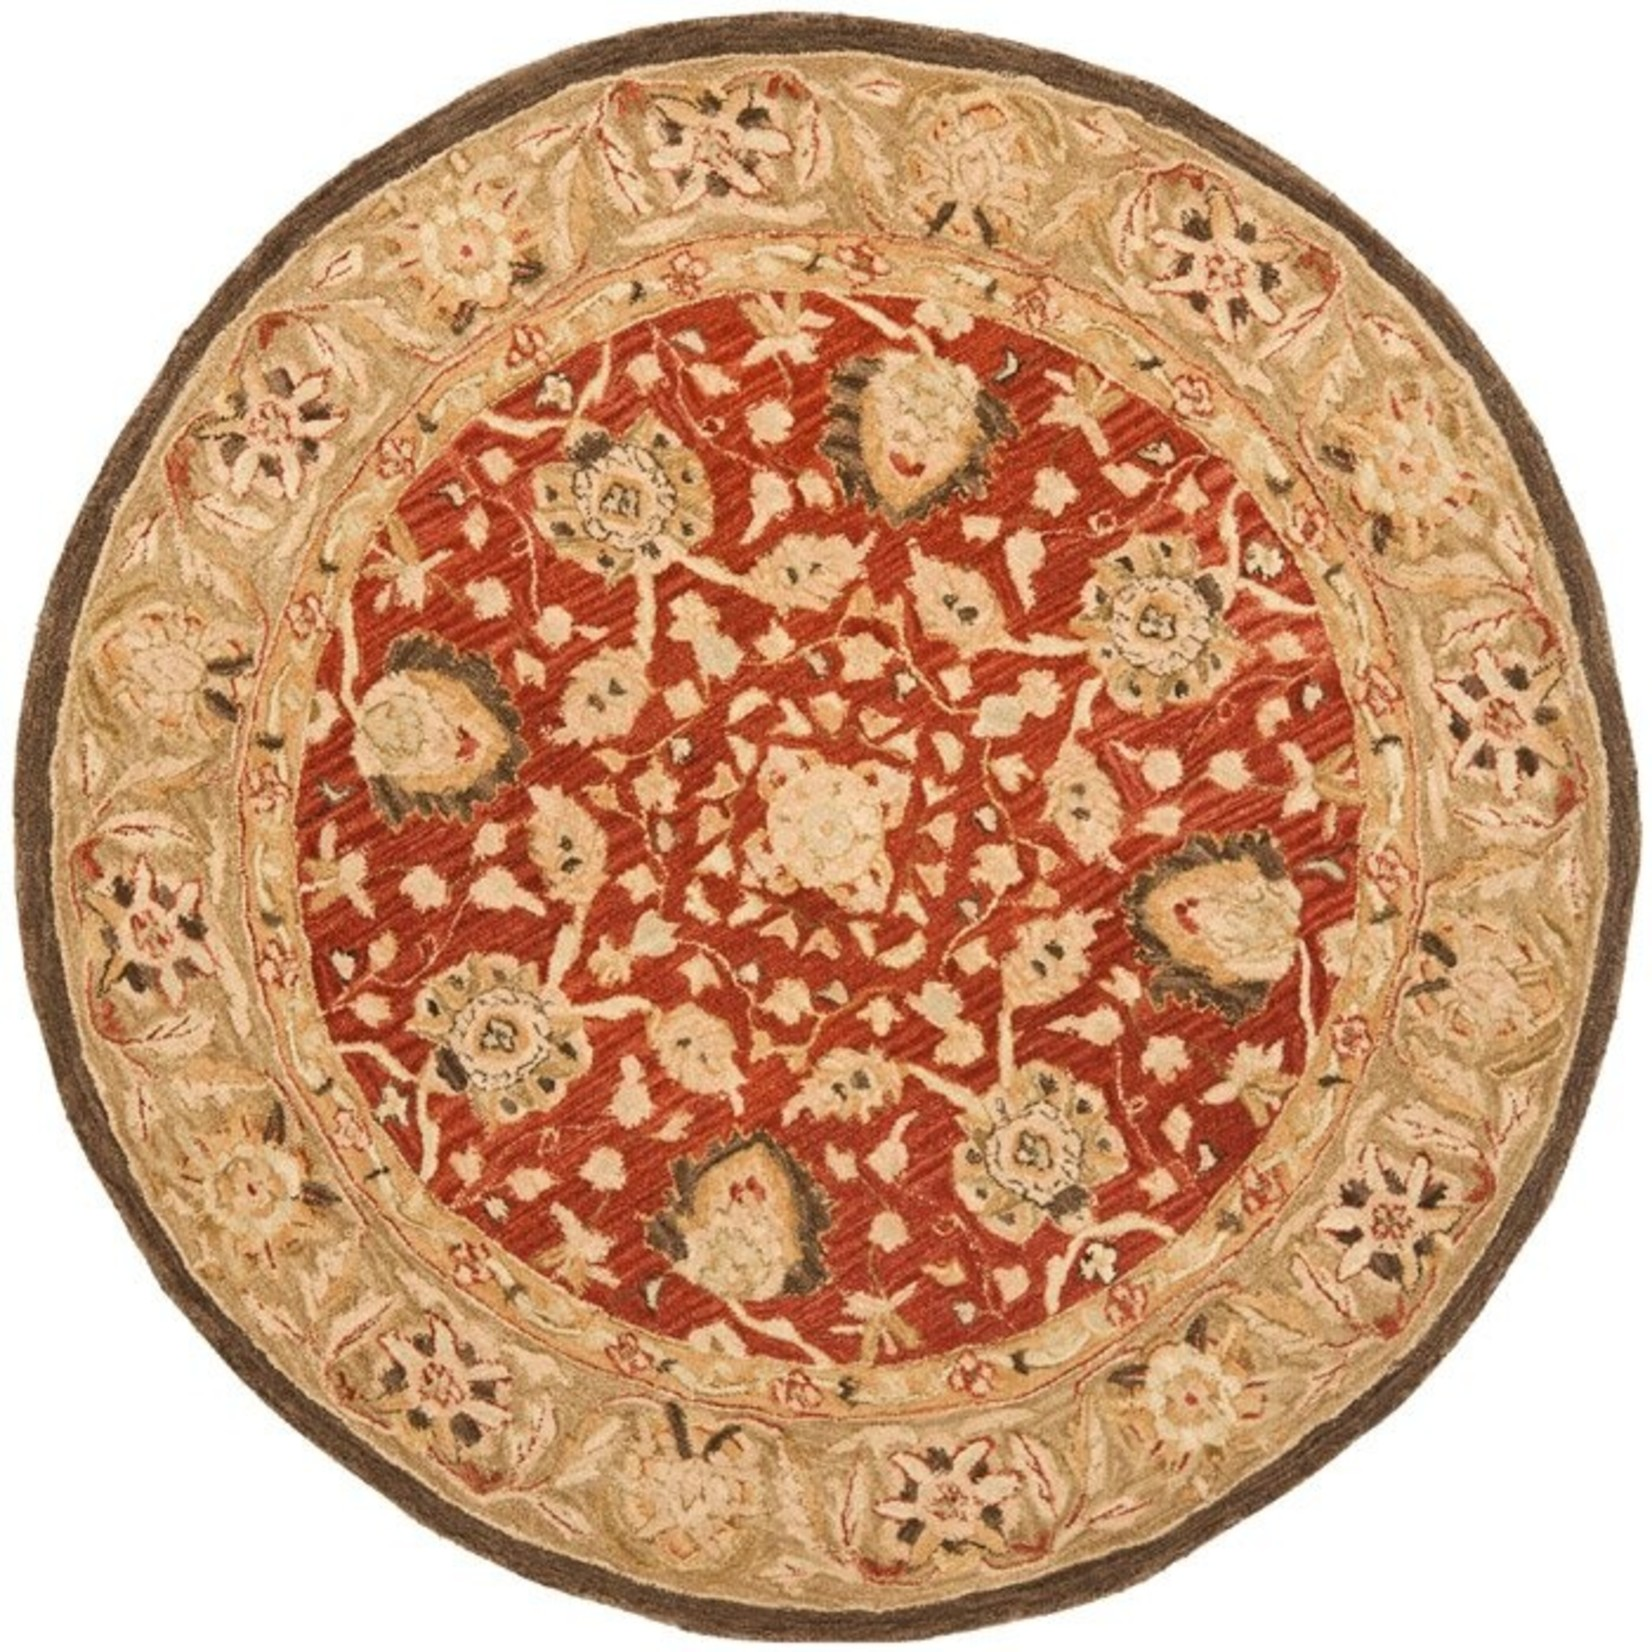 *4' Round - Tingley Hand-Tufted Wool Rust/Green Area Rug - Slight Damage to Back